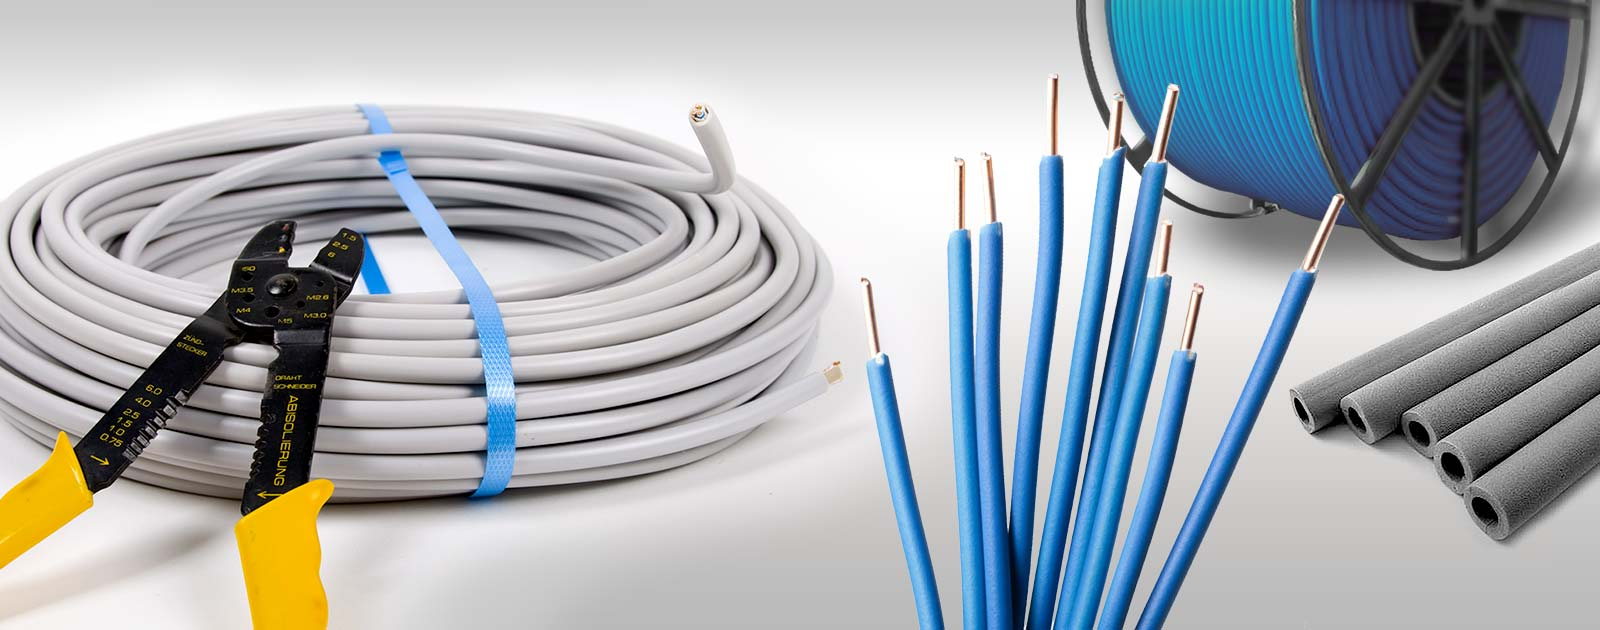 hight resolution of rubber products cable industry